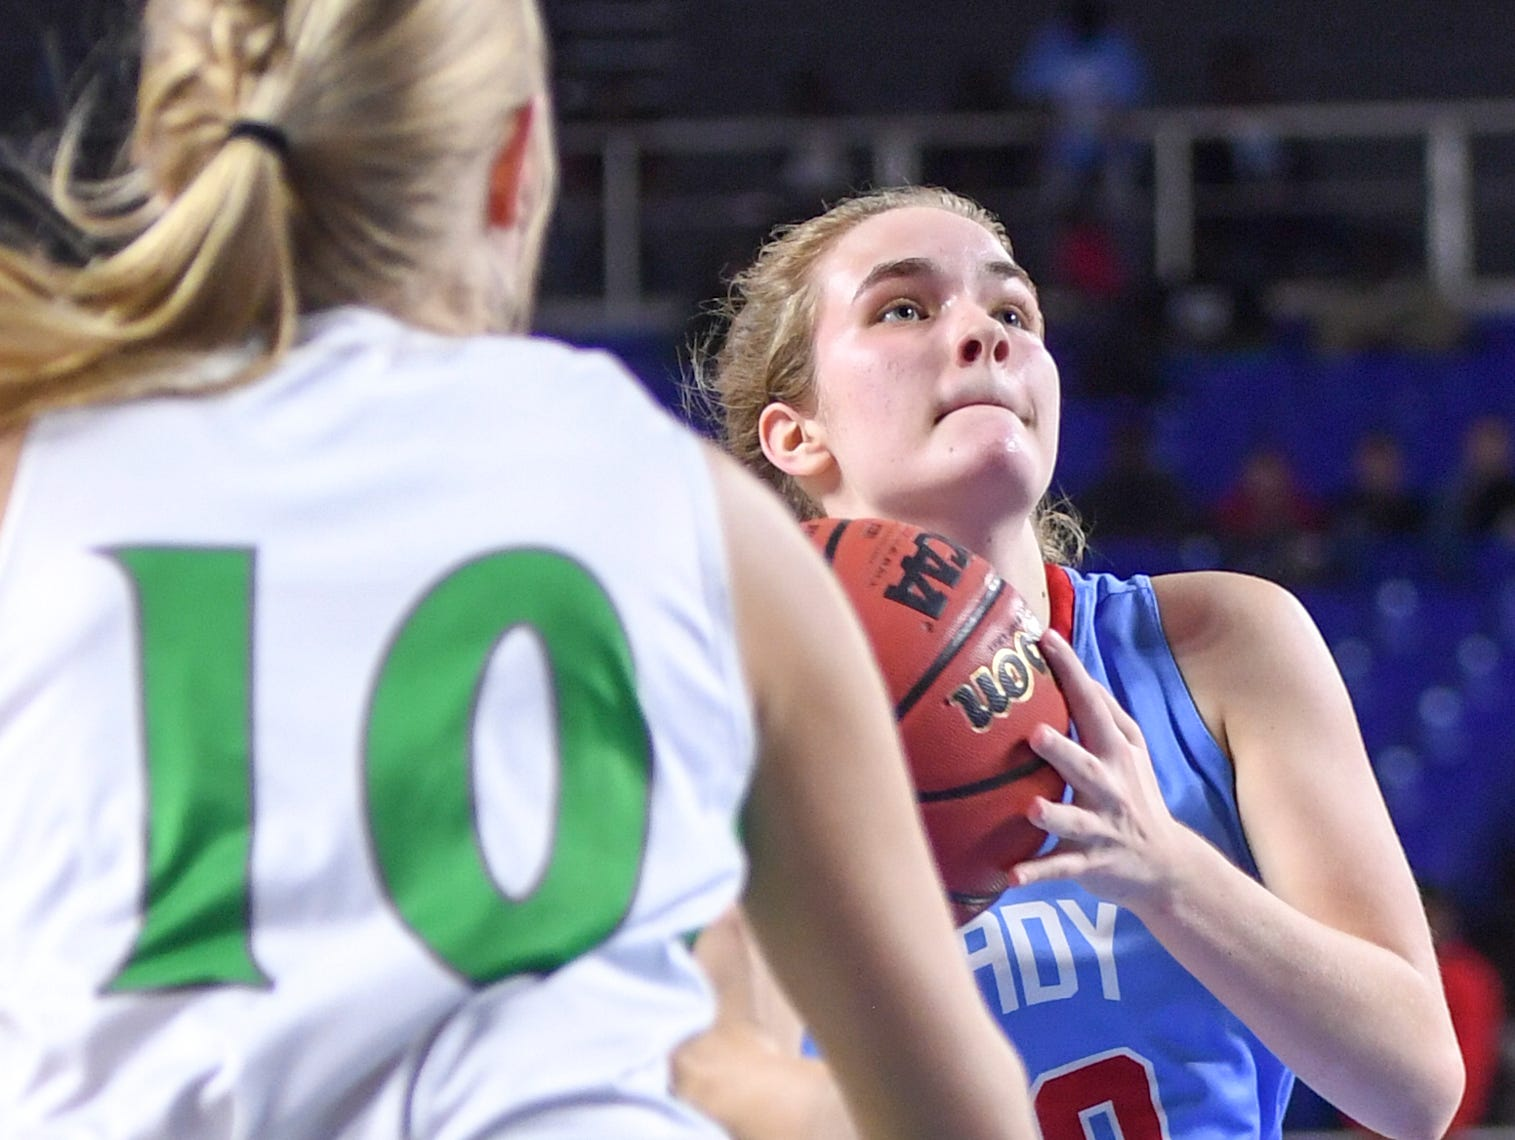 Gibson County's Kaci Sweatt (10) attempts to get past Midway's Heaven Prinzi (10) during their Class A semifinal game, Friday, March 8, 2019, in  Murfreesboro.